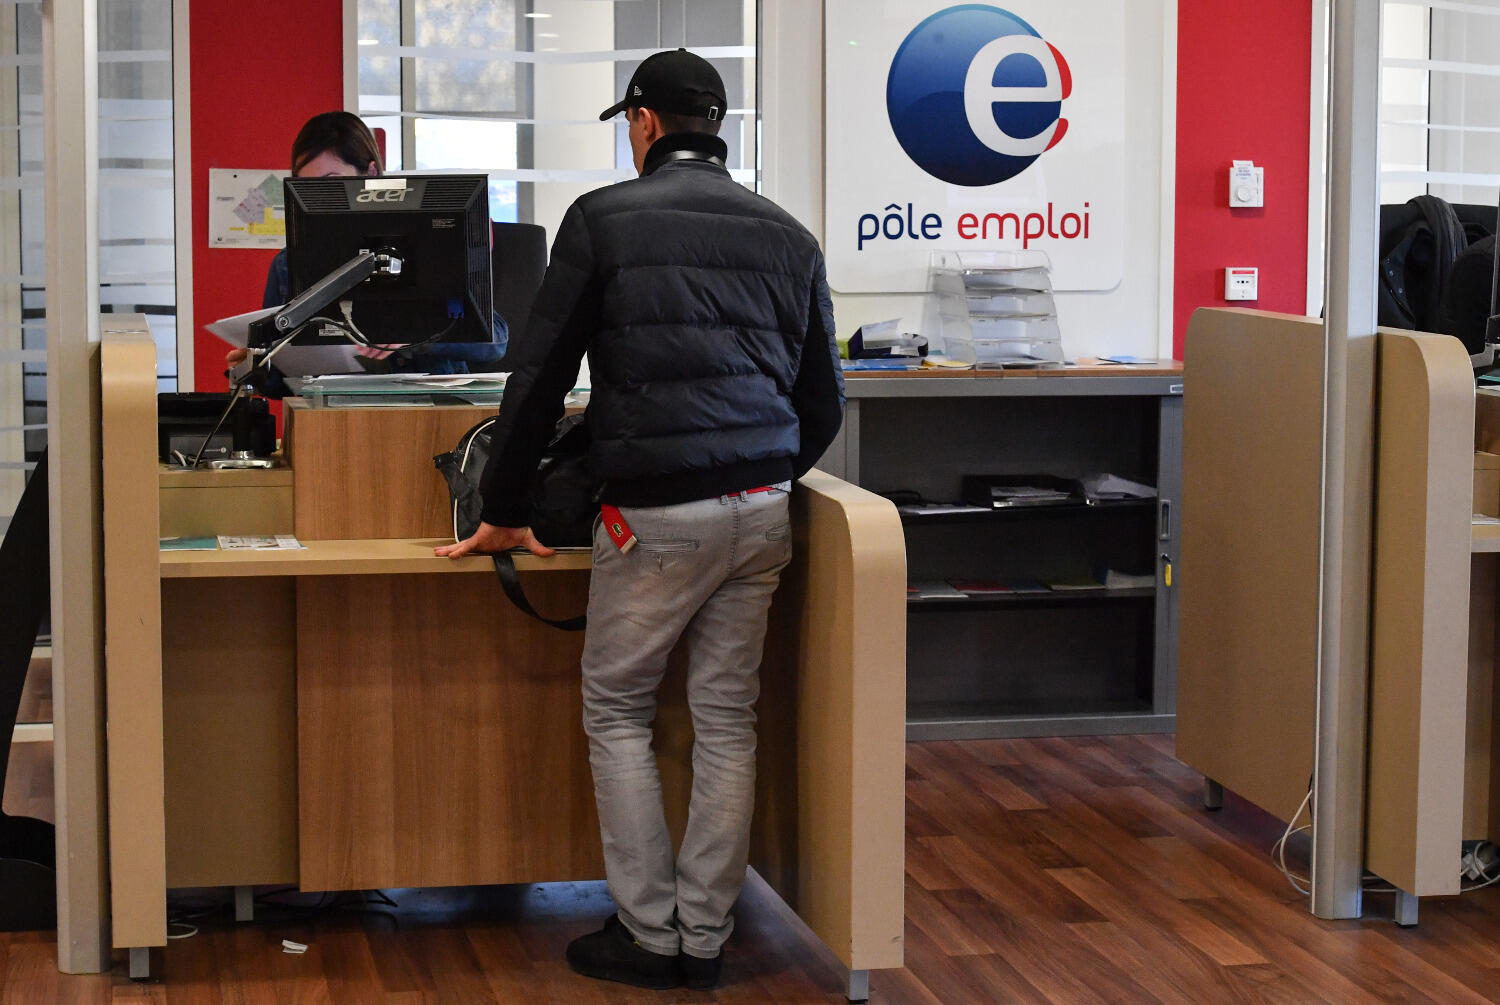 France's jobless rate, based on data from employment centres, dipped to a 10-year low of 8.5 percent in the second quarter of 2019.